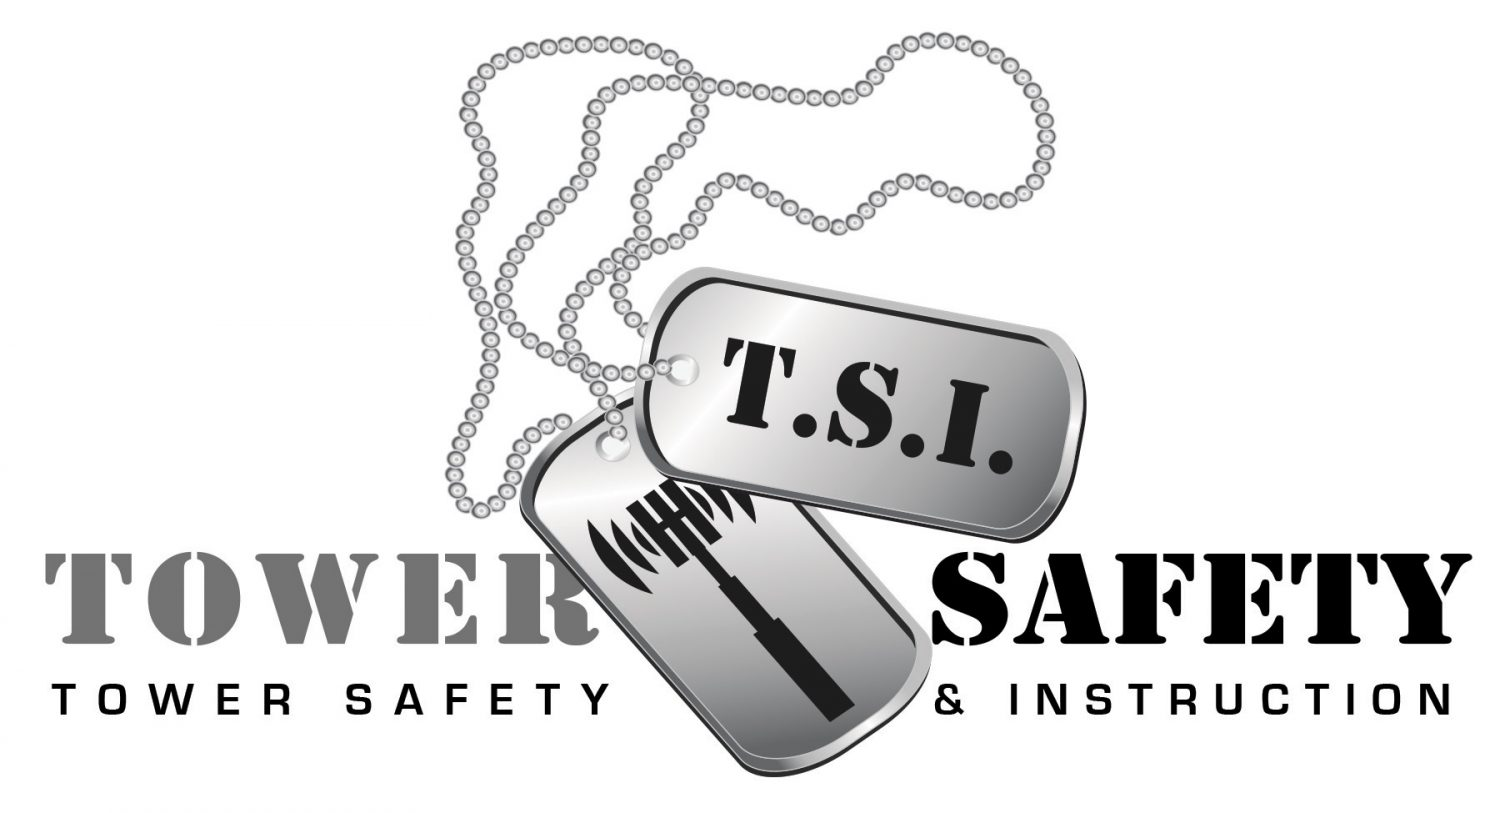 Tower Safety Logo Towersafety.com